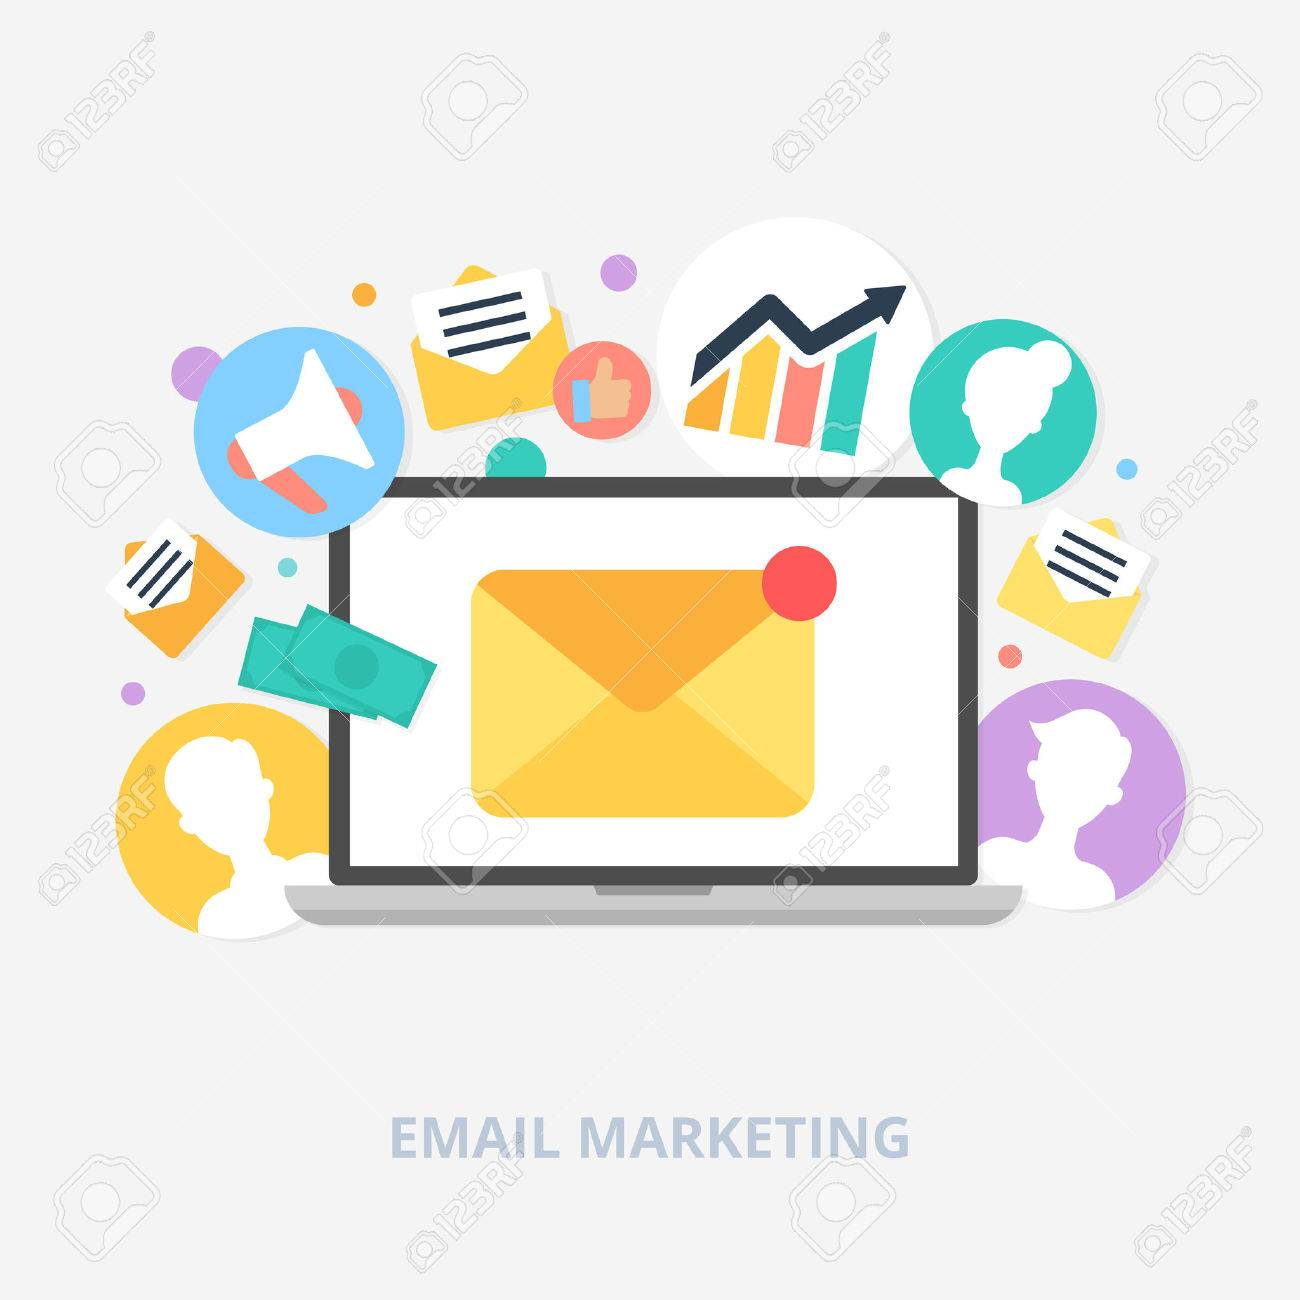 Email marketing concept vector illustration, flat style - 36964994